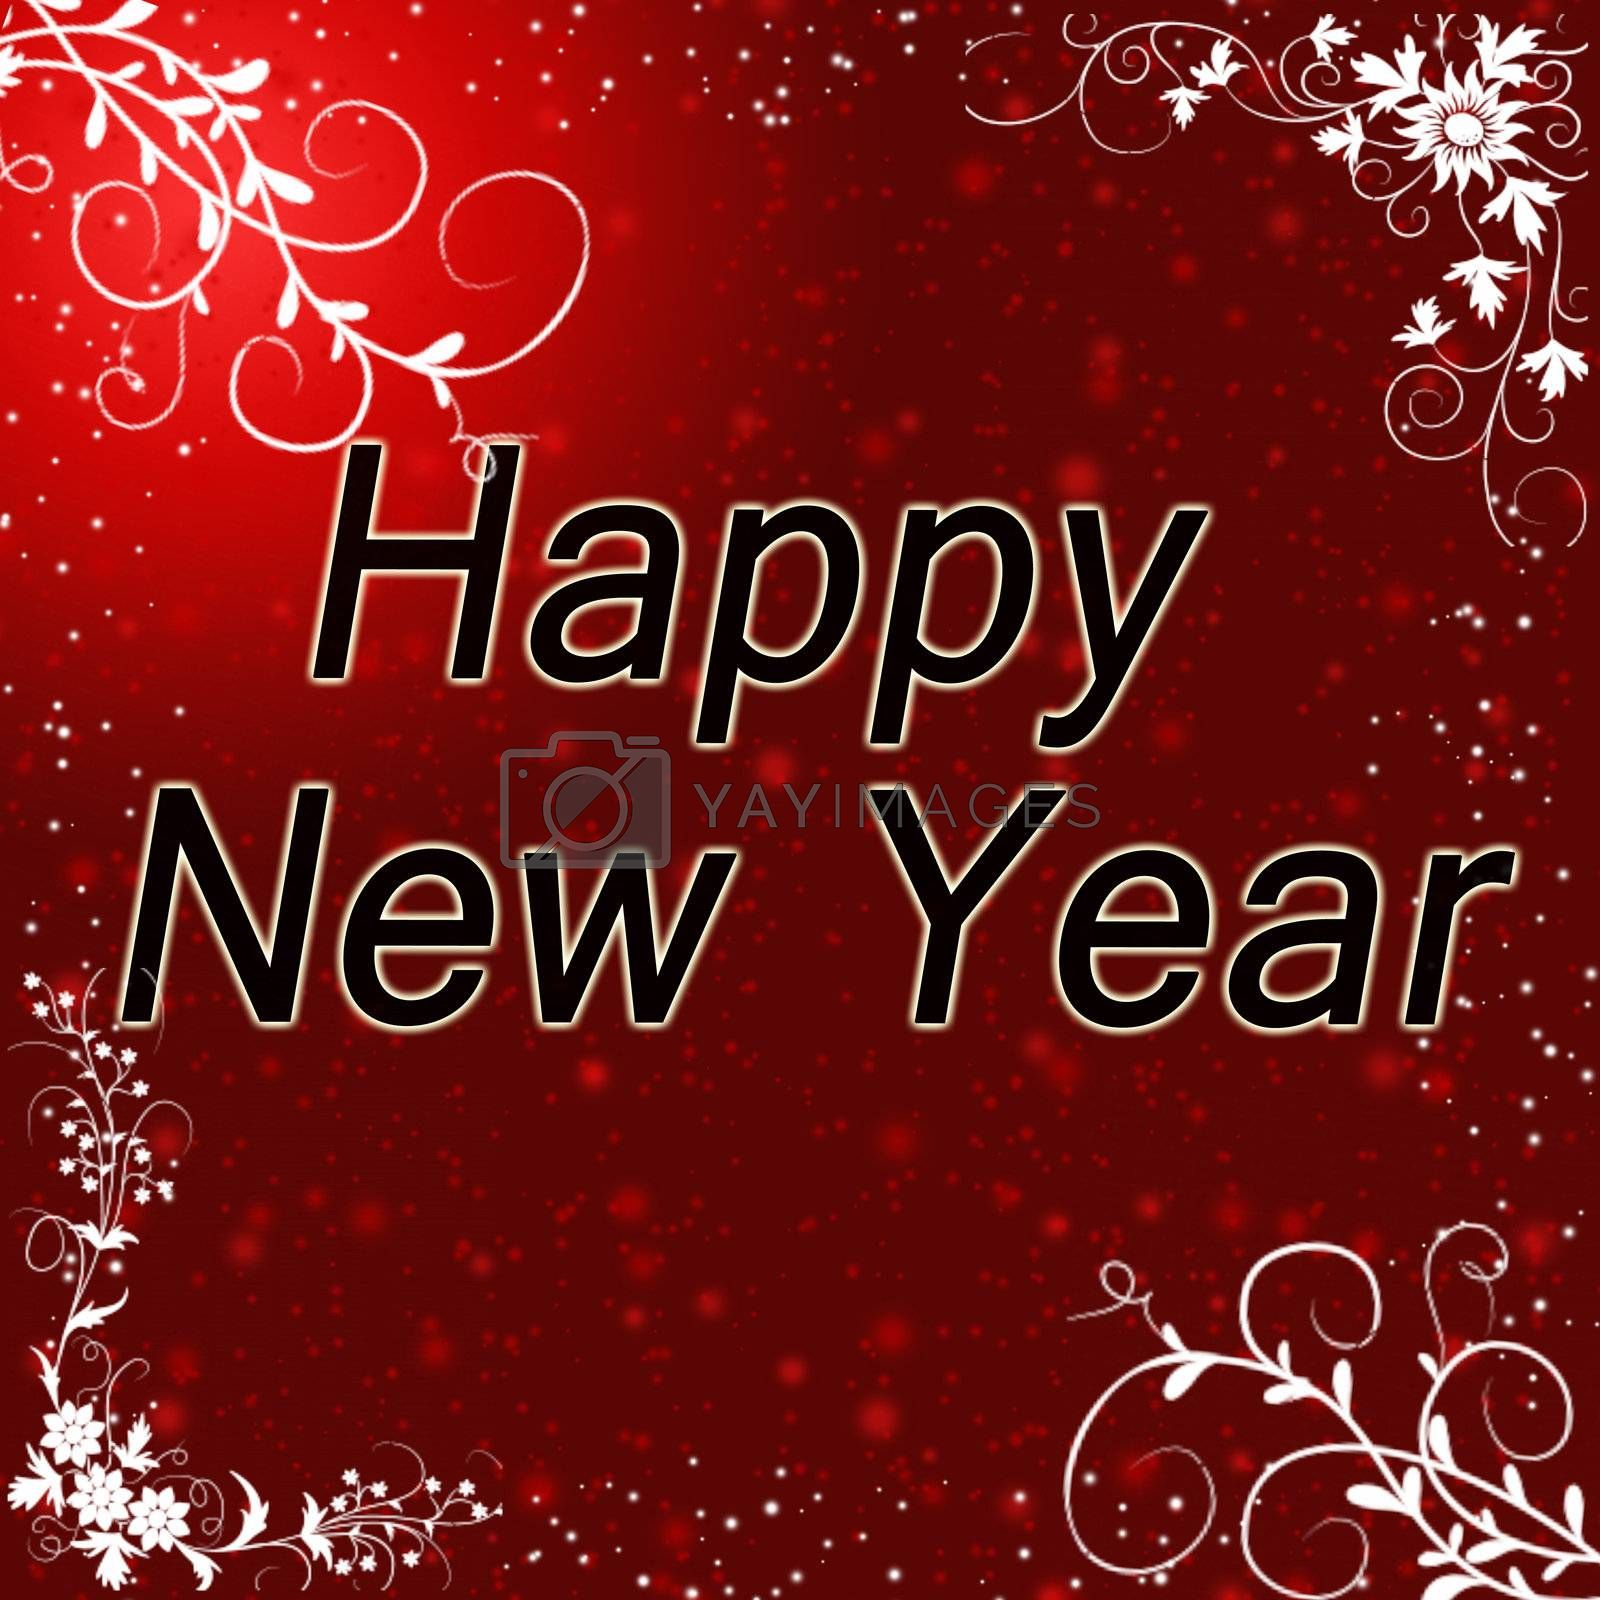 Royalty free image of New year greeting card by gitusik